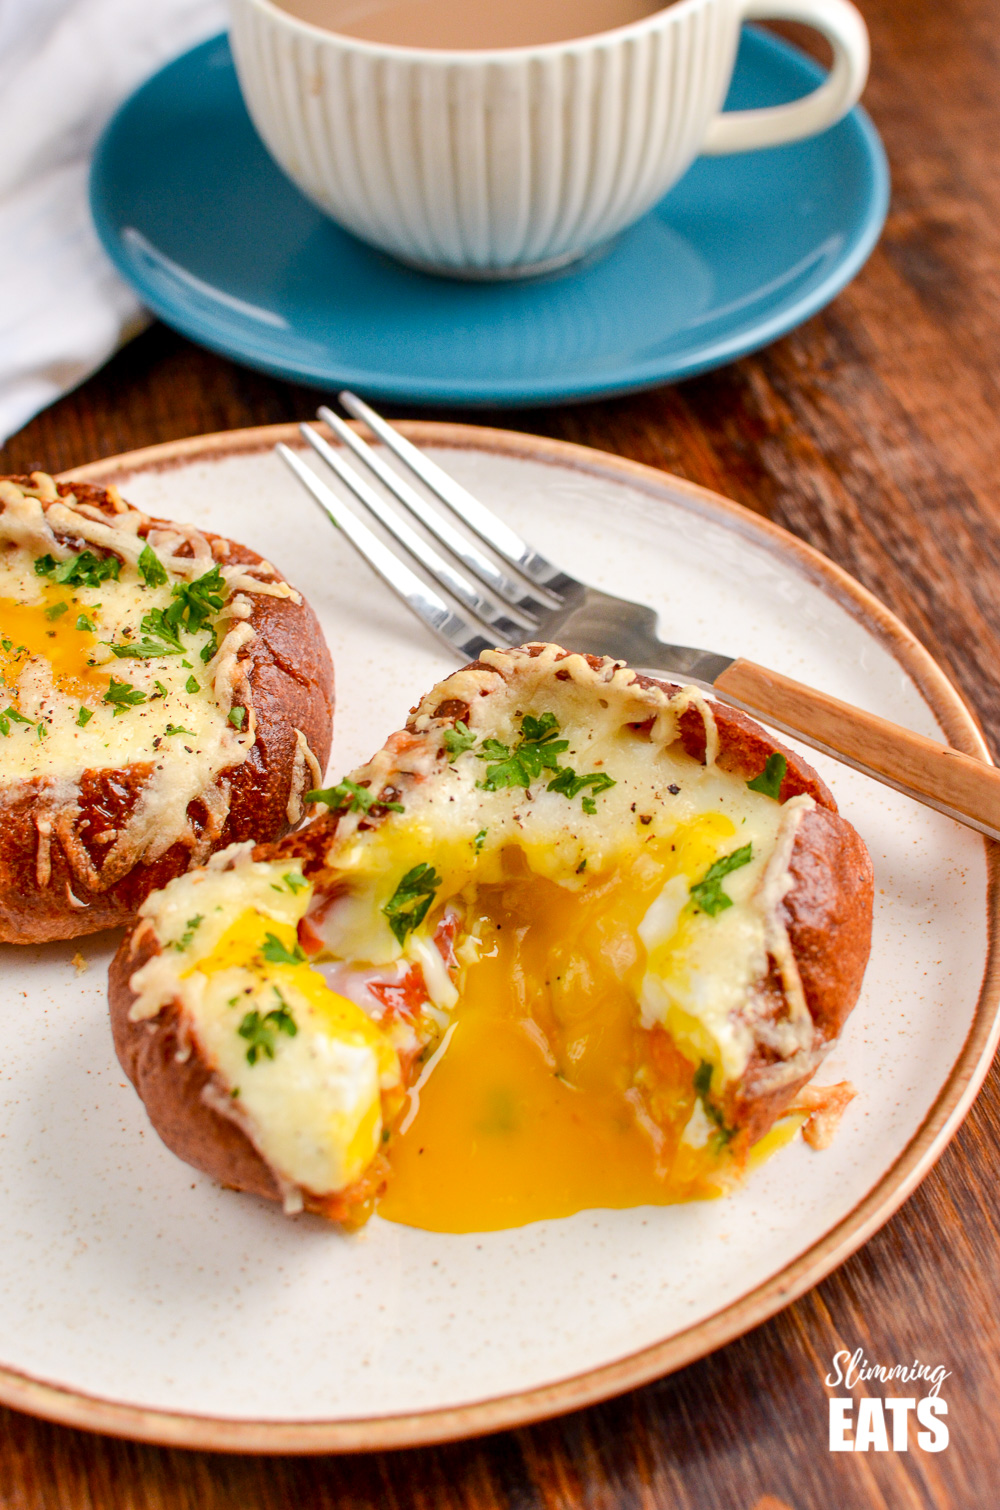 breakfast roll bakes with egg yolk burst on plate with fork